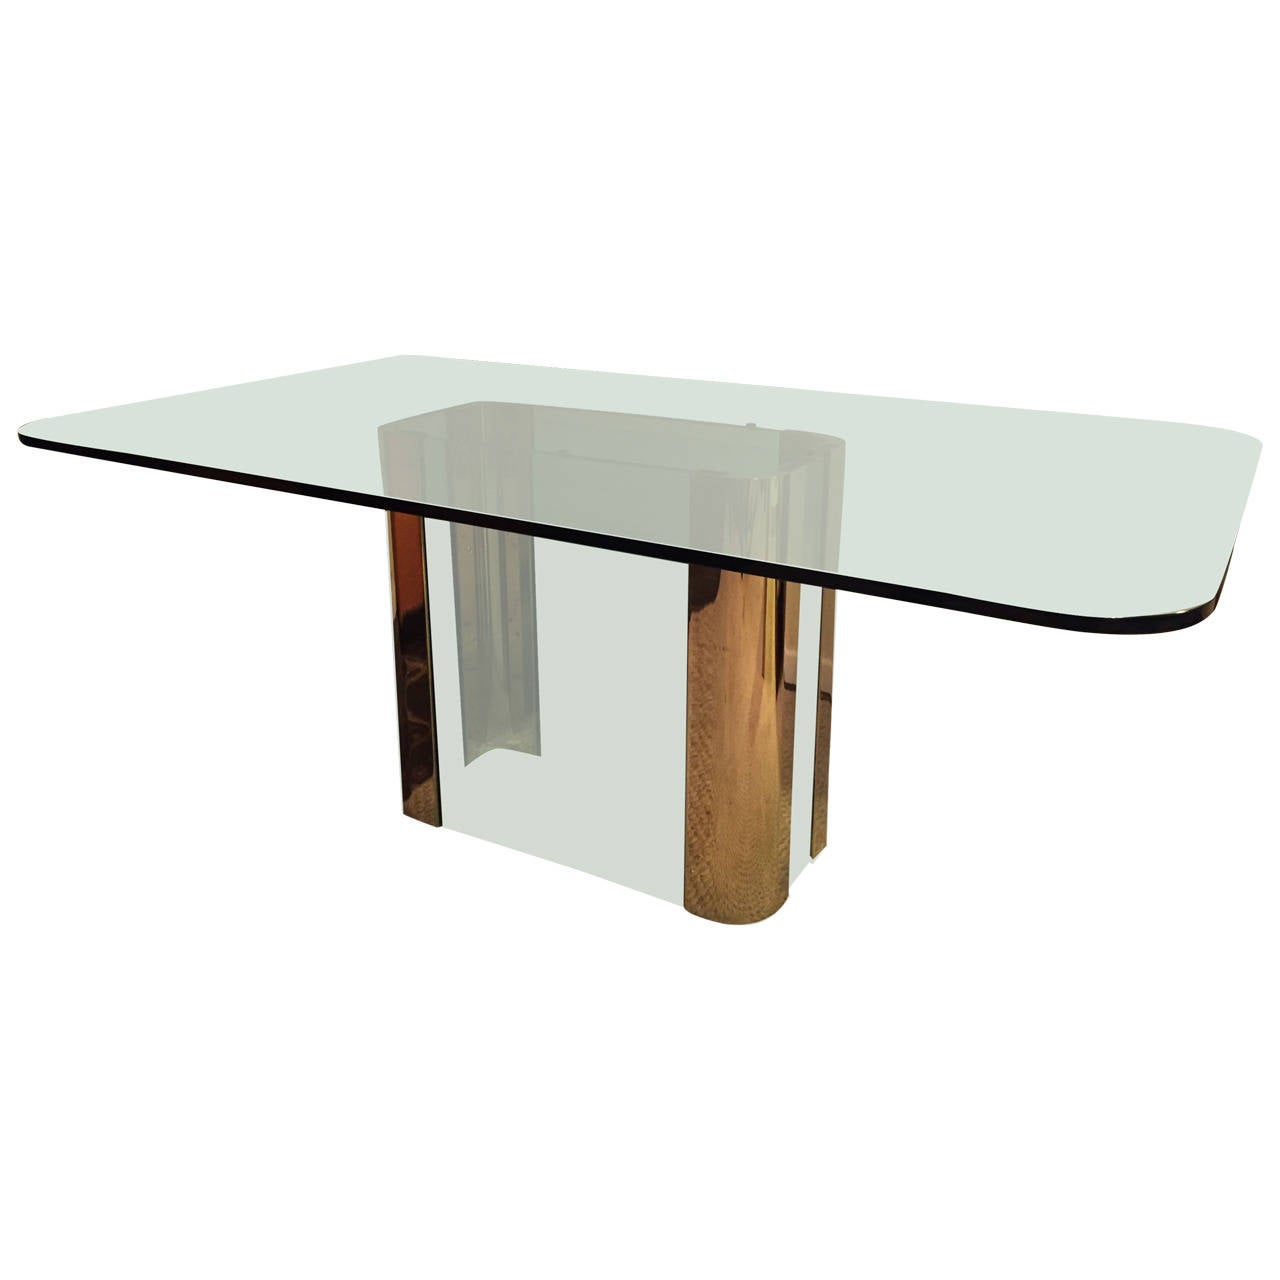 Pace collection brass and glass base dining table for sale for Dining table base